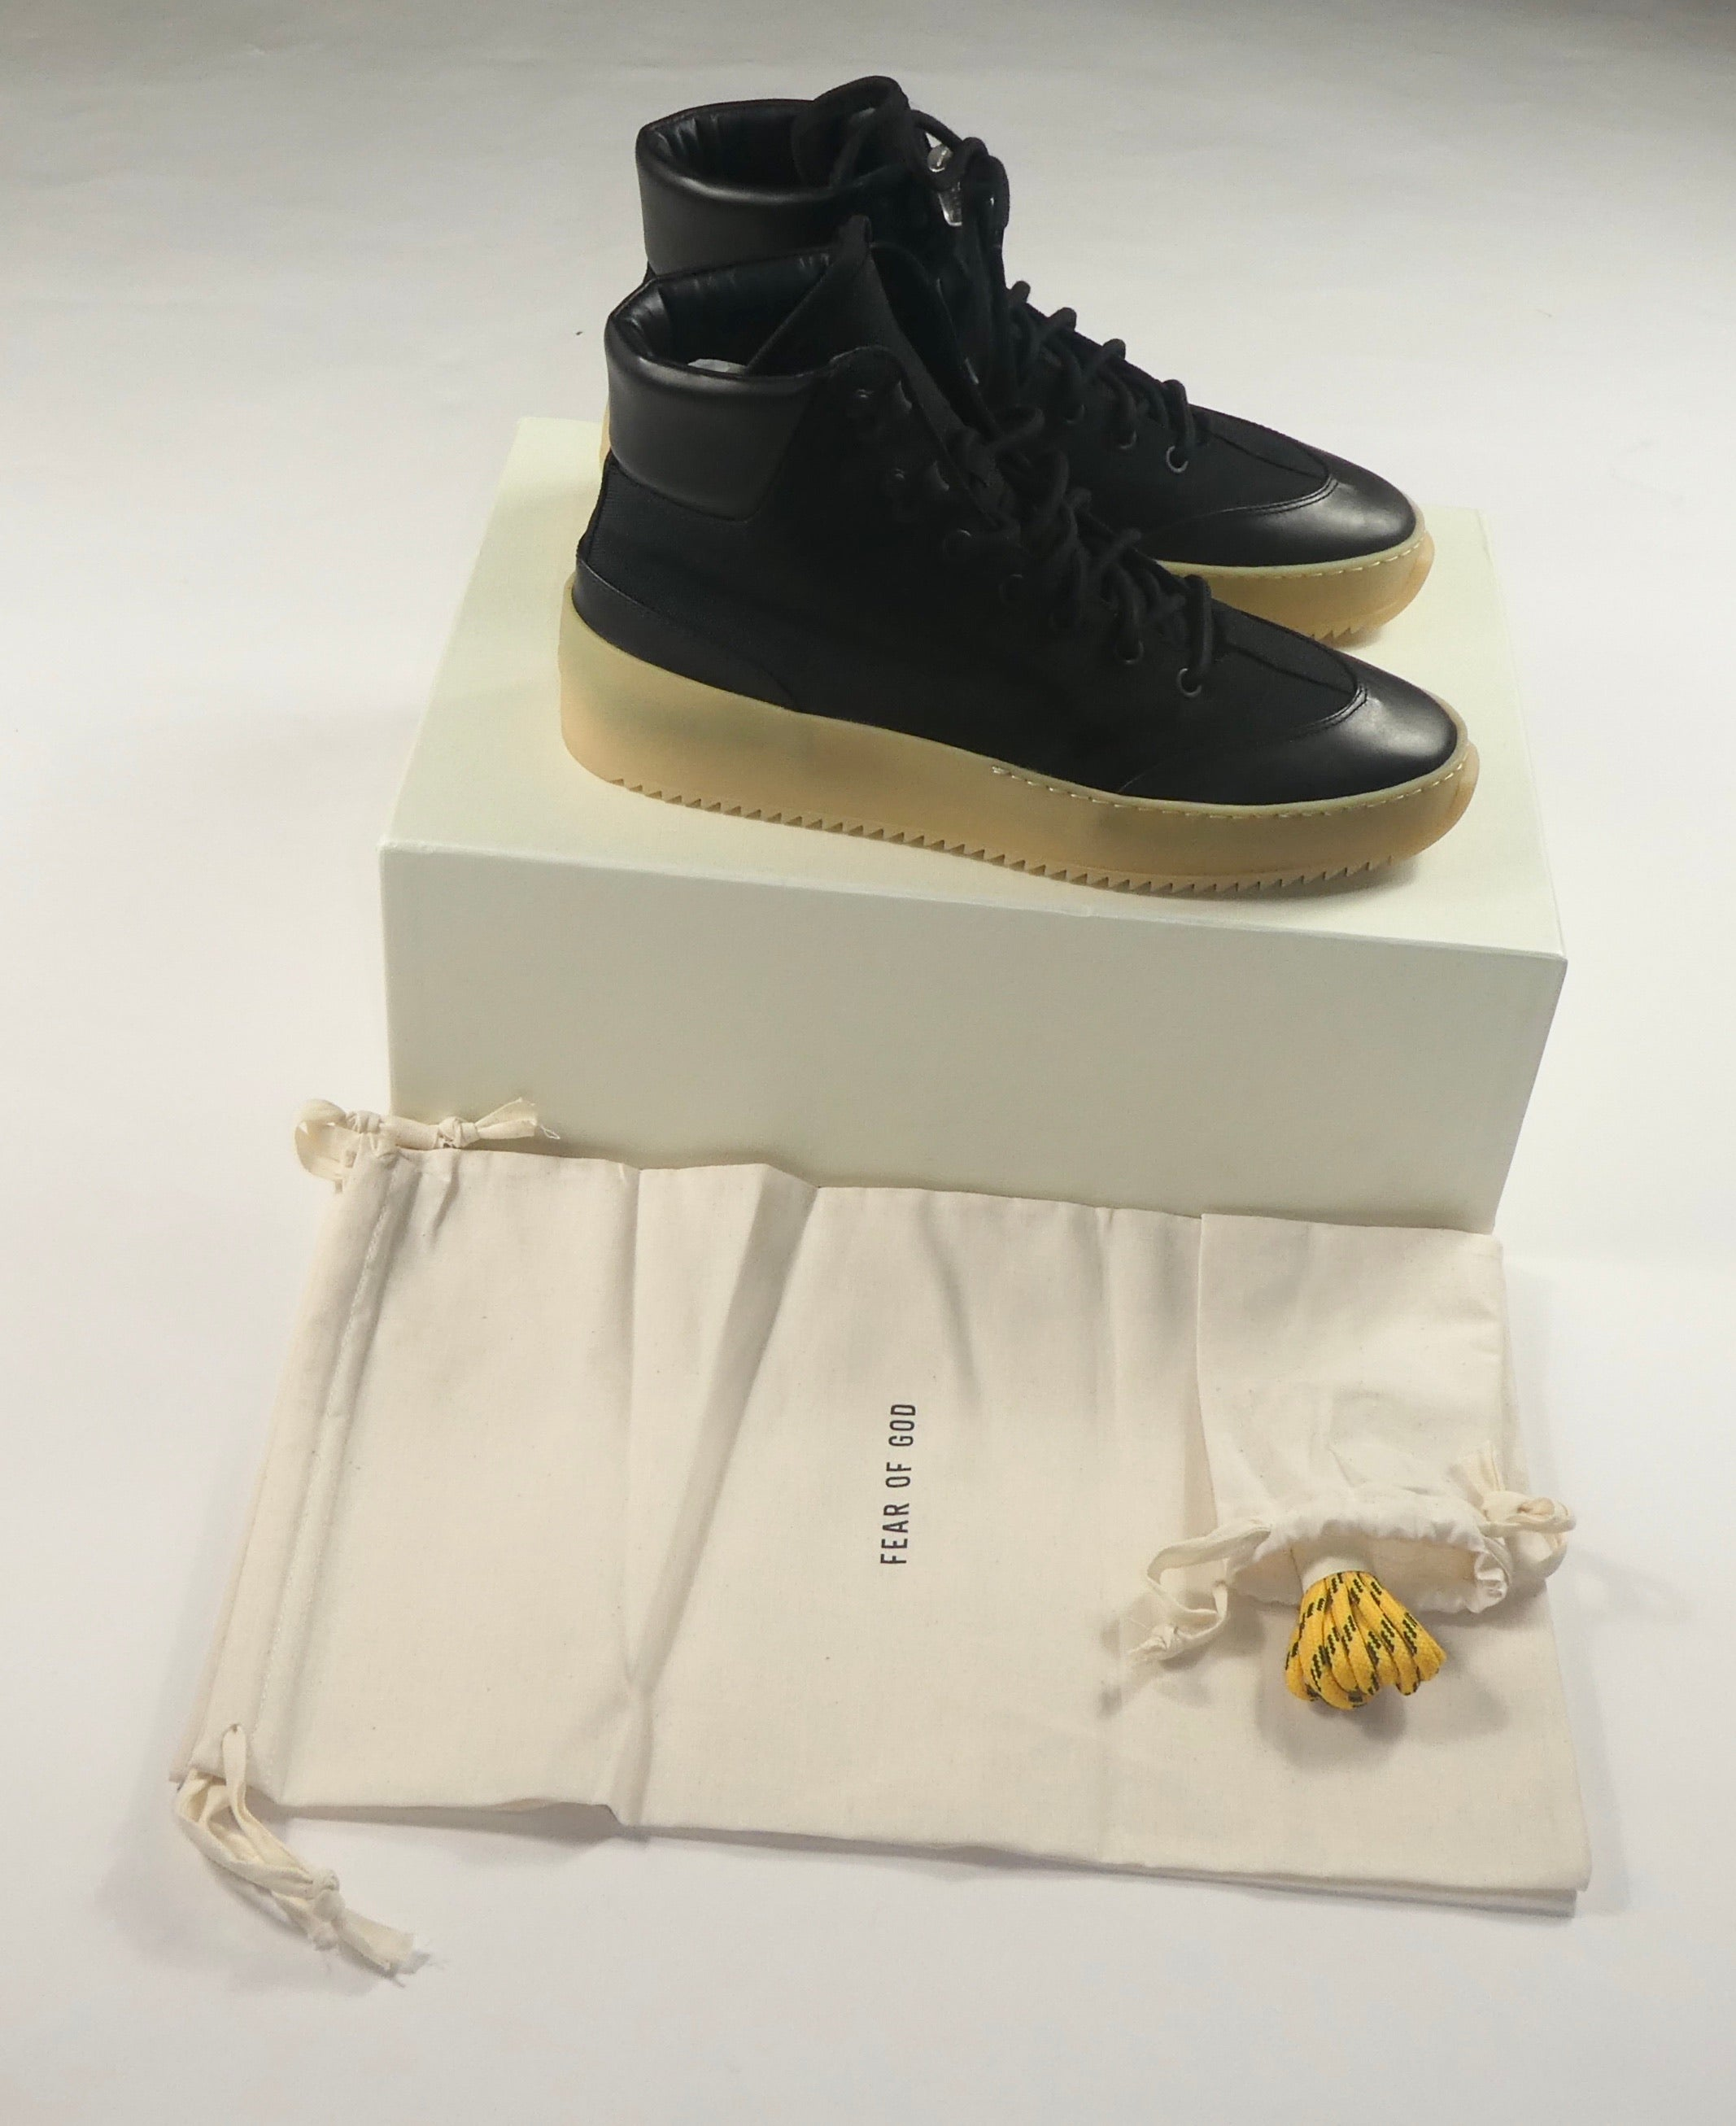 Fear of God 6th Collection Hiking Sneaker - UK 7 BNIB RRP £659